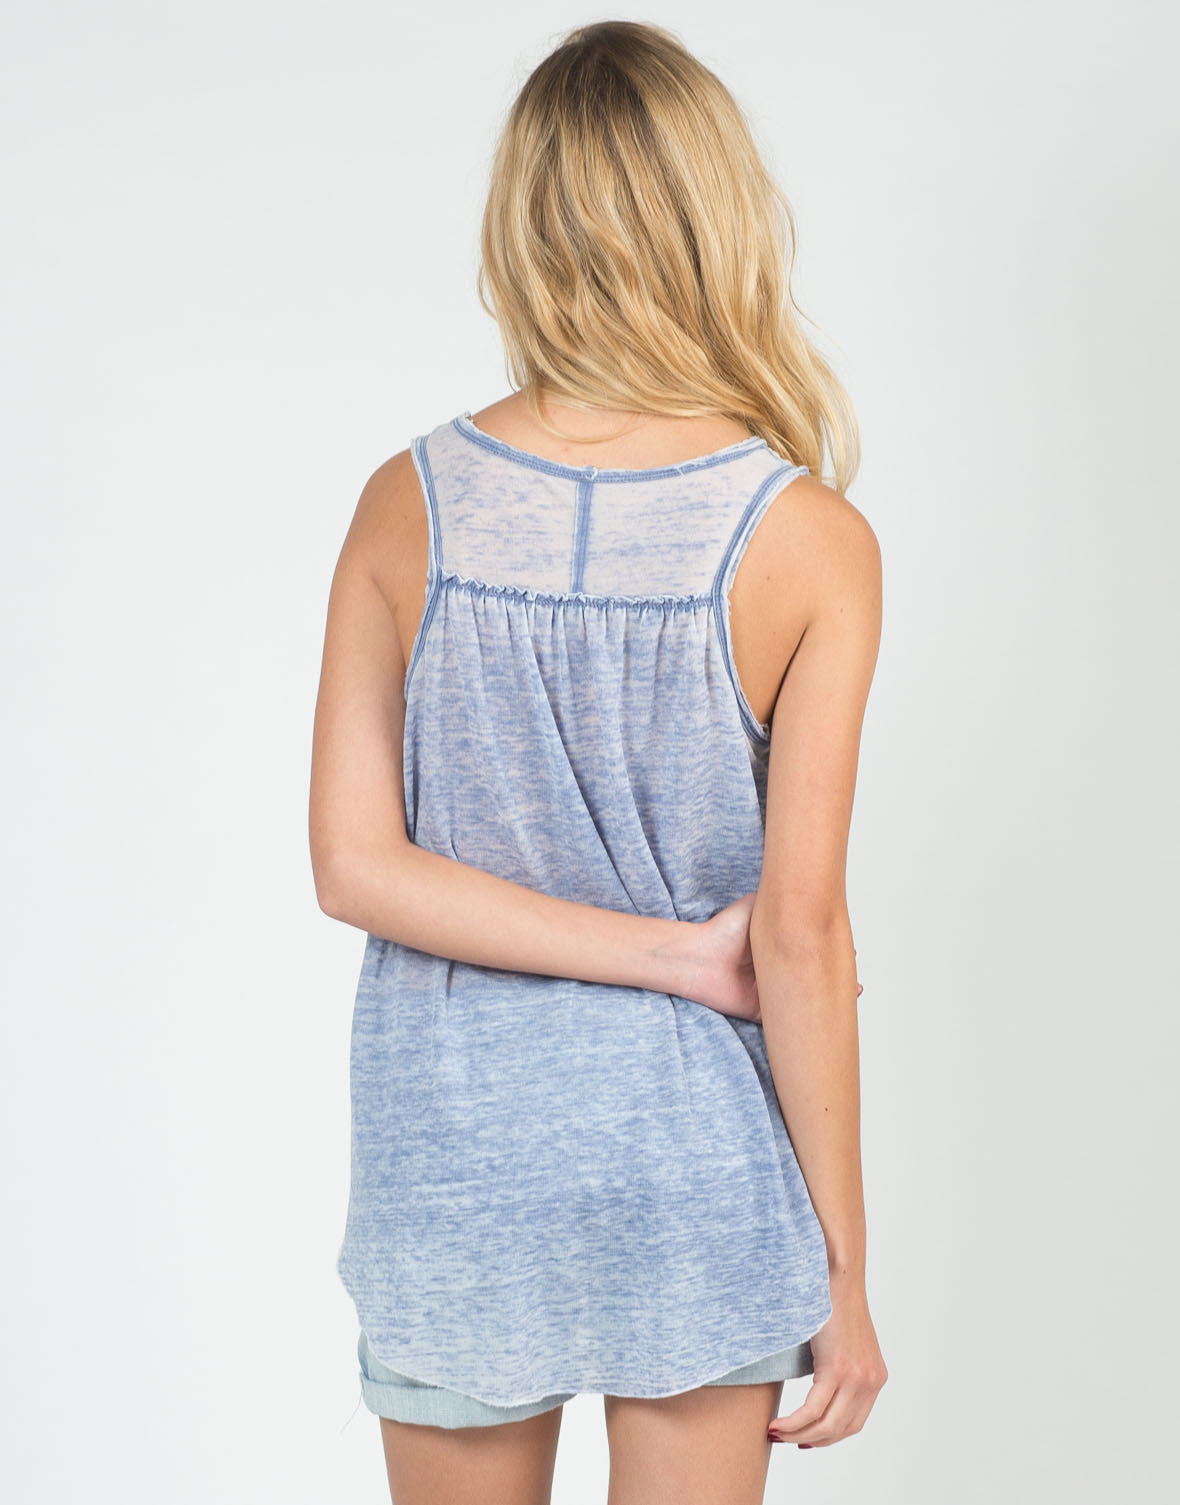 Back View of Sheer V-Neck Soft Tank